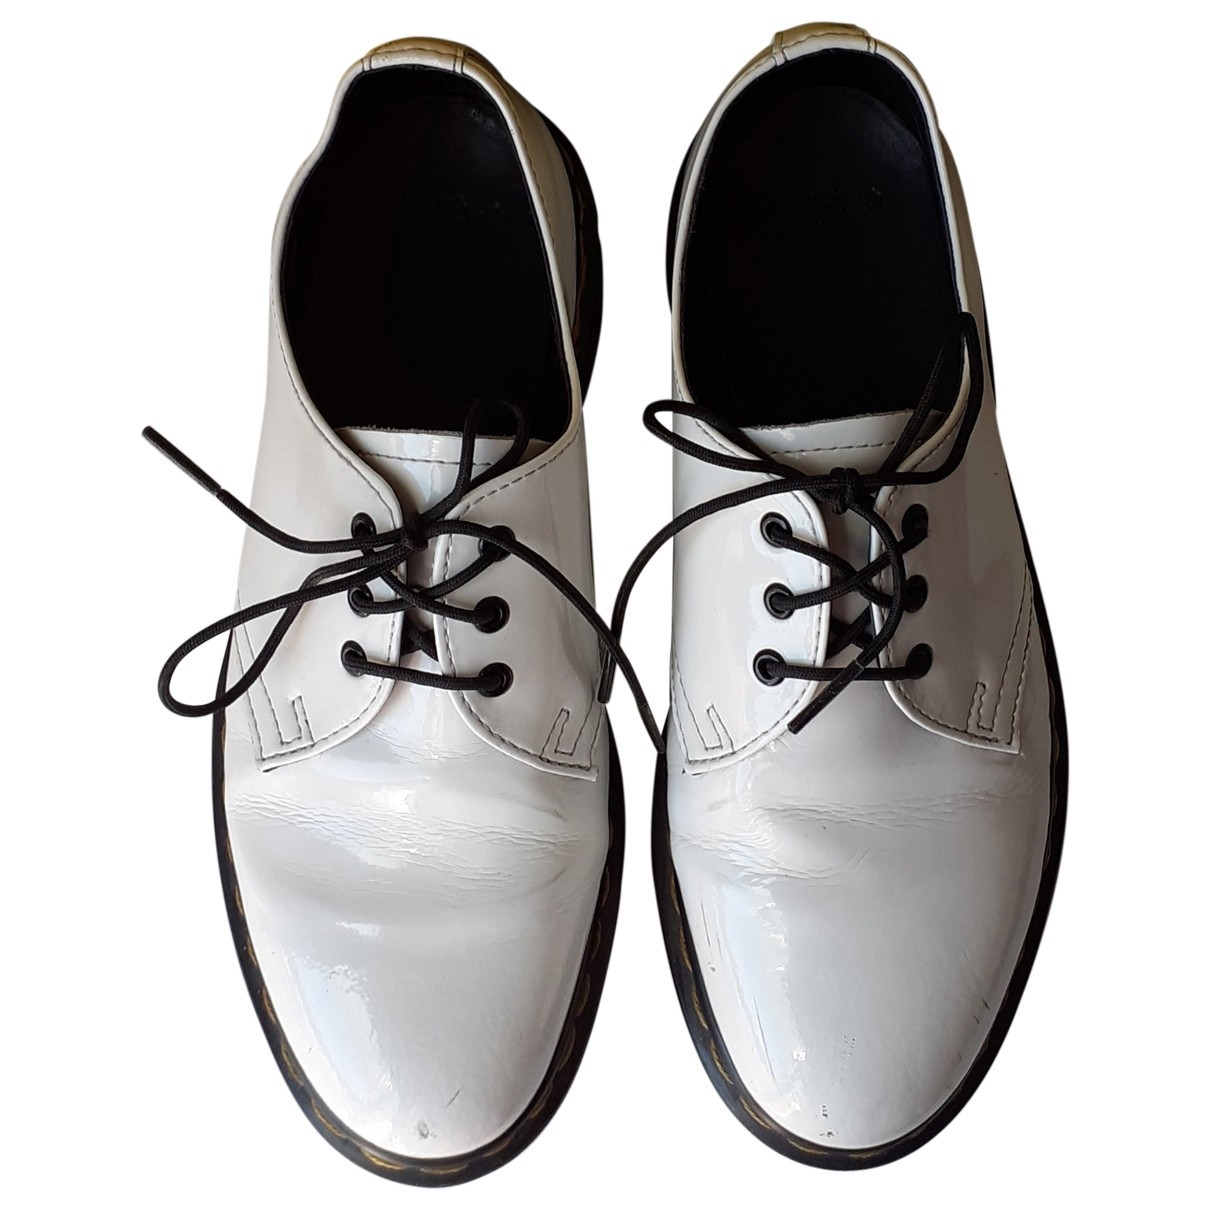 Dr. Martens 1461 (3 eye) White Patent leather Lace ups for Women 38 EU